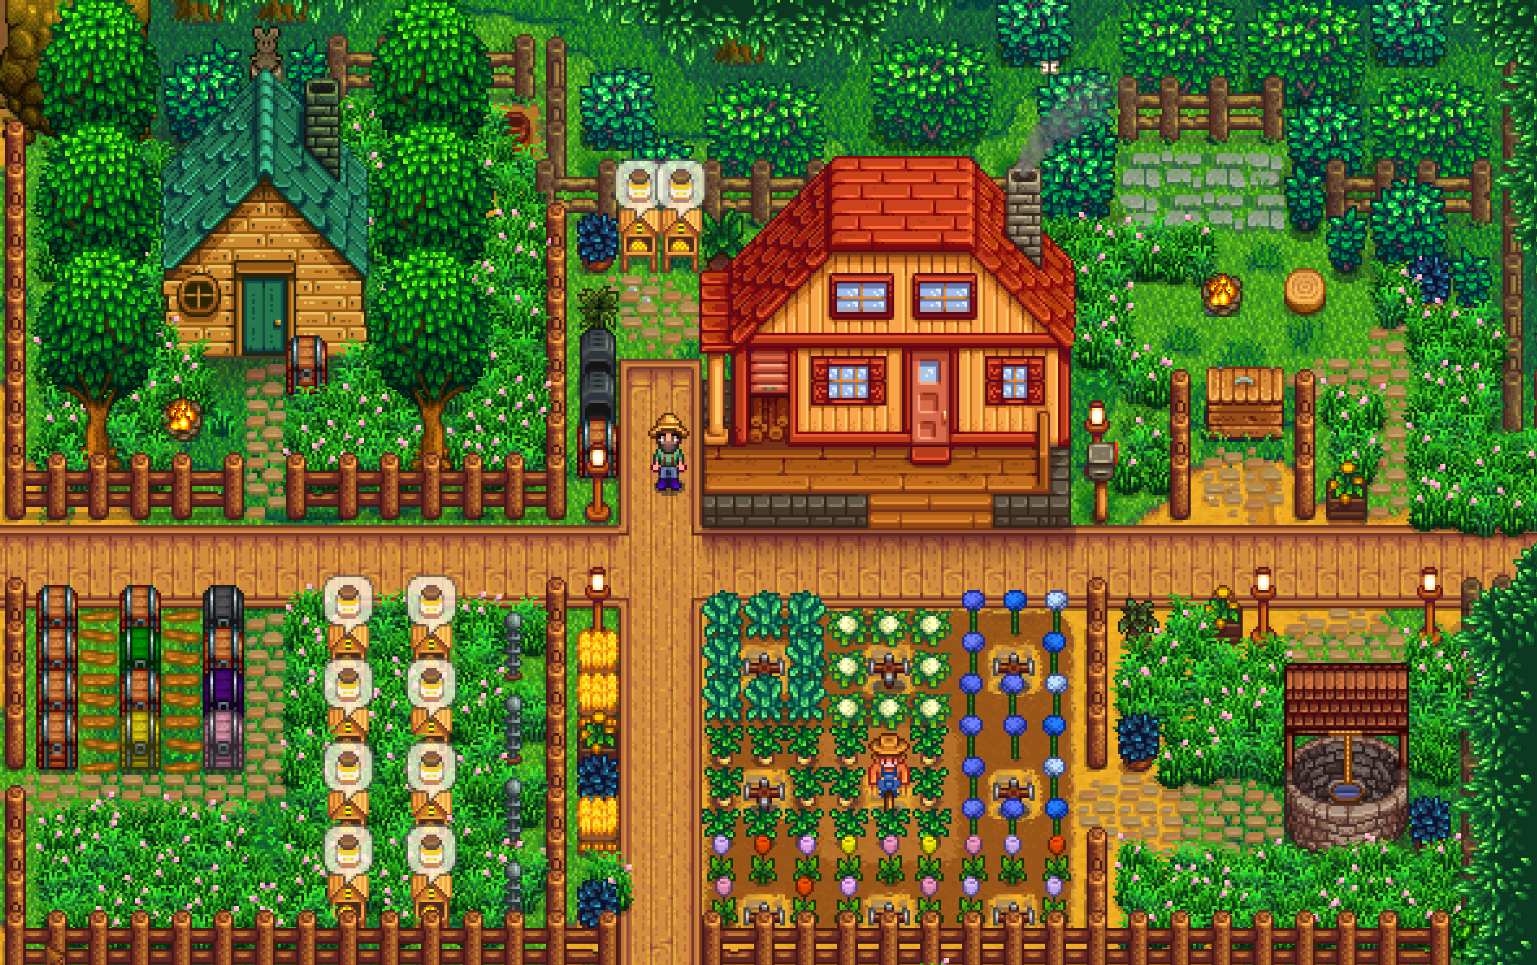 Pin By I Mgg On Sv Ideas Inspiration Stardew Valley Layout Stardew Valley Farms Stardew Valley